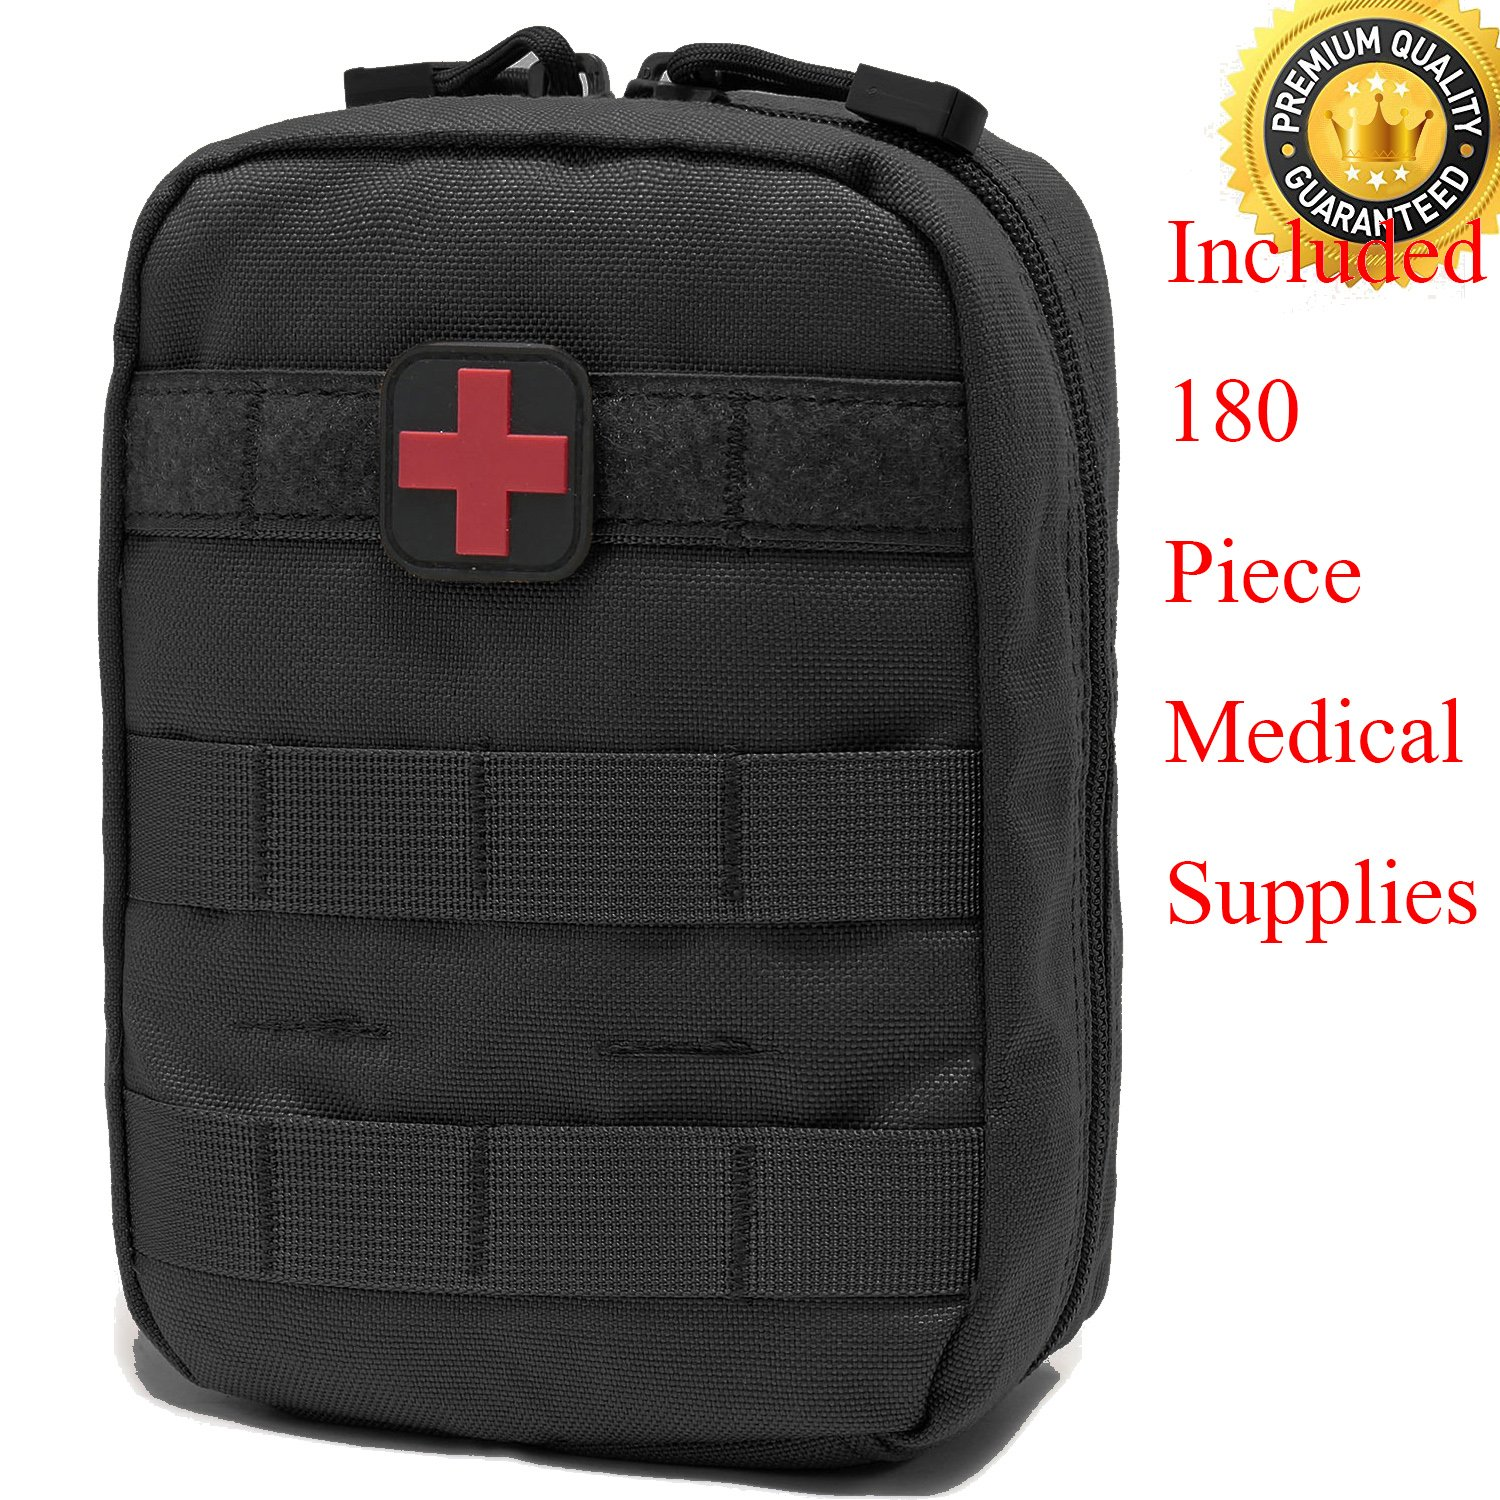 Carlebben EMT Pouch MOLLE Ifak Pouch Tactical MOLLE Medical First Aid Kit Utility Pouch (with Medical Supplies)